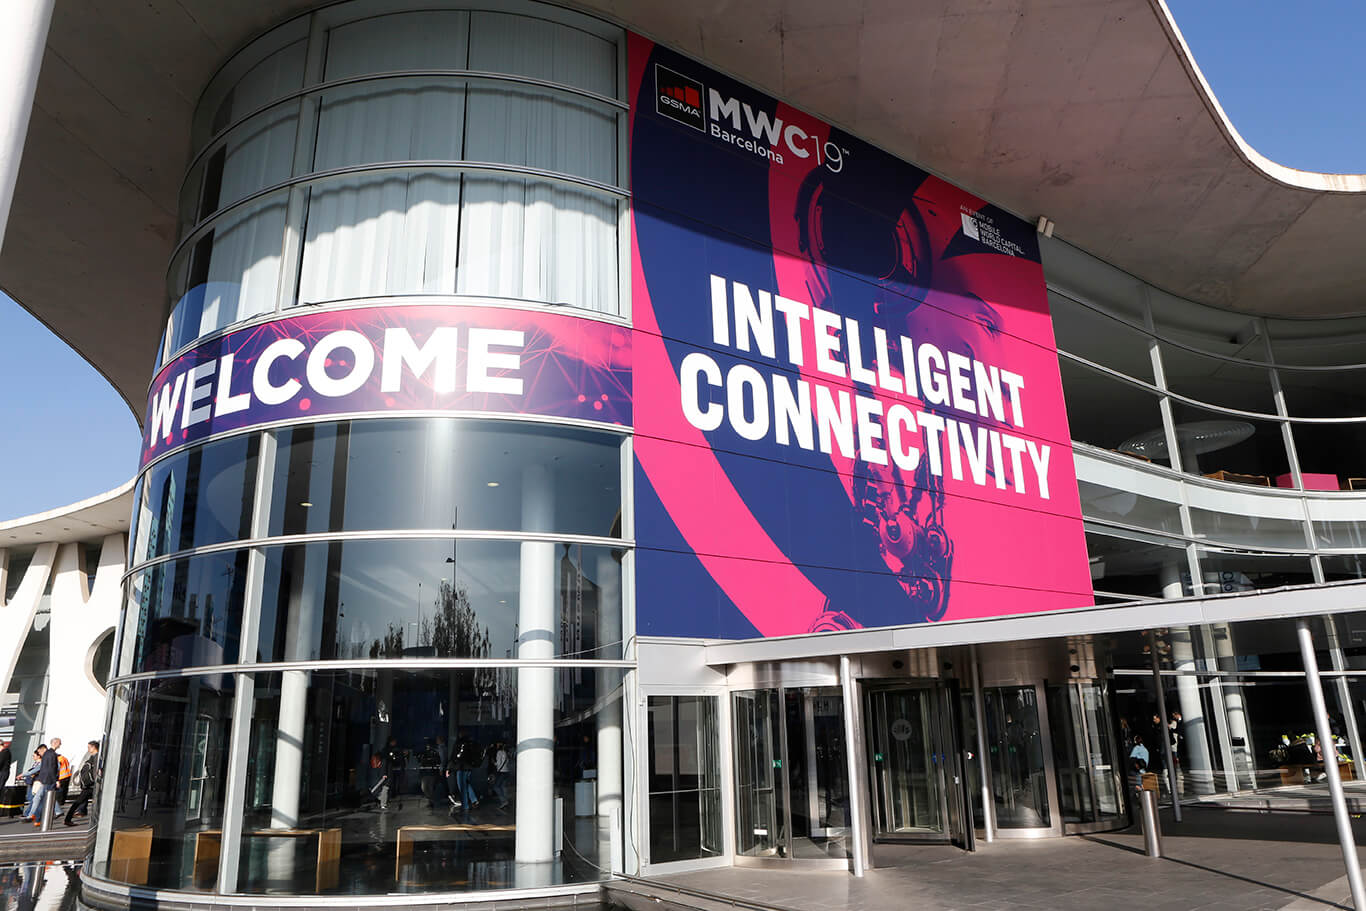 The main trends from Mobile World Congress 2019 in Barcelona